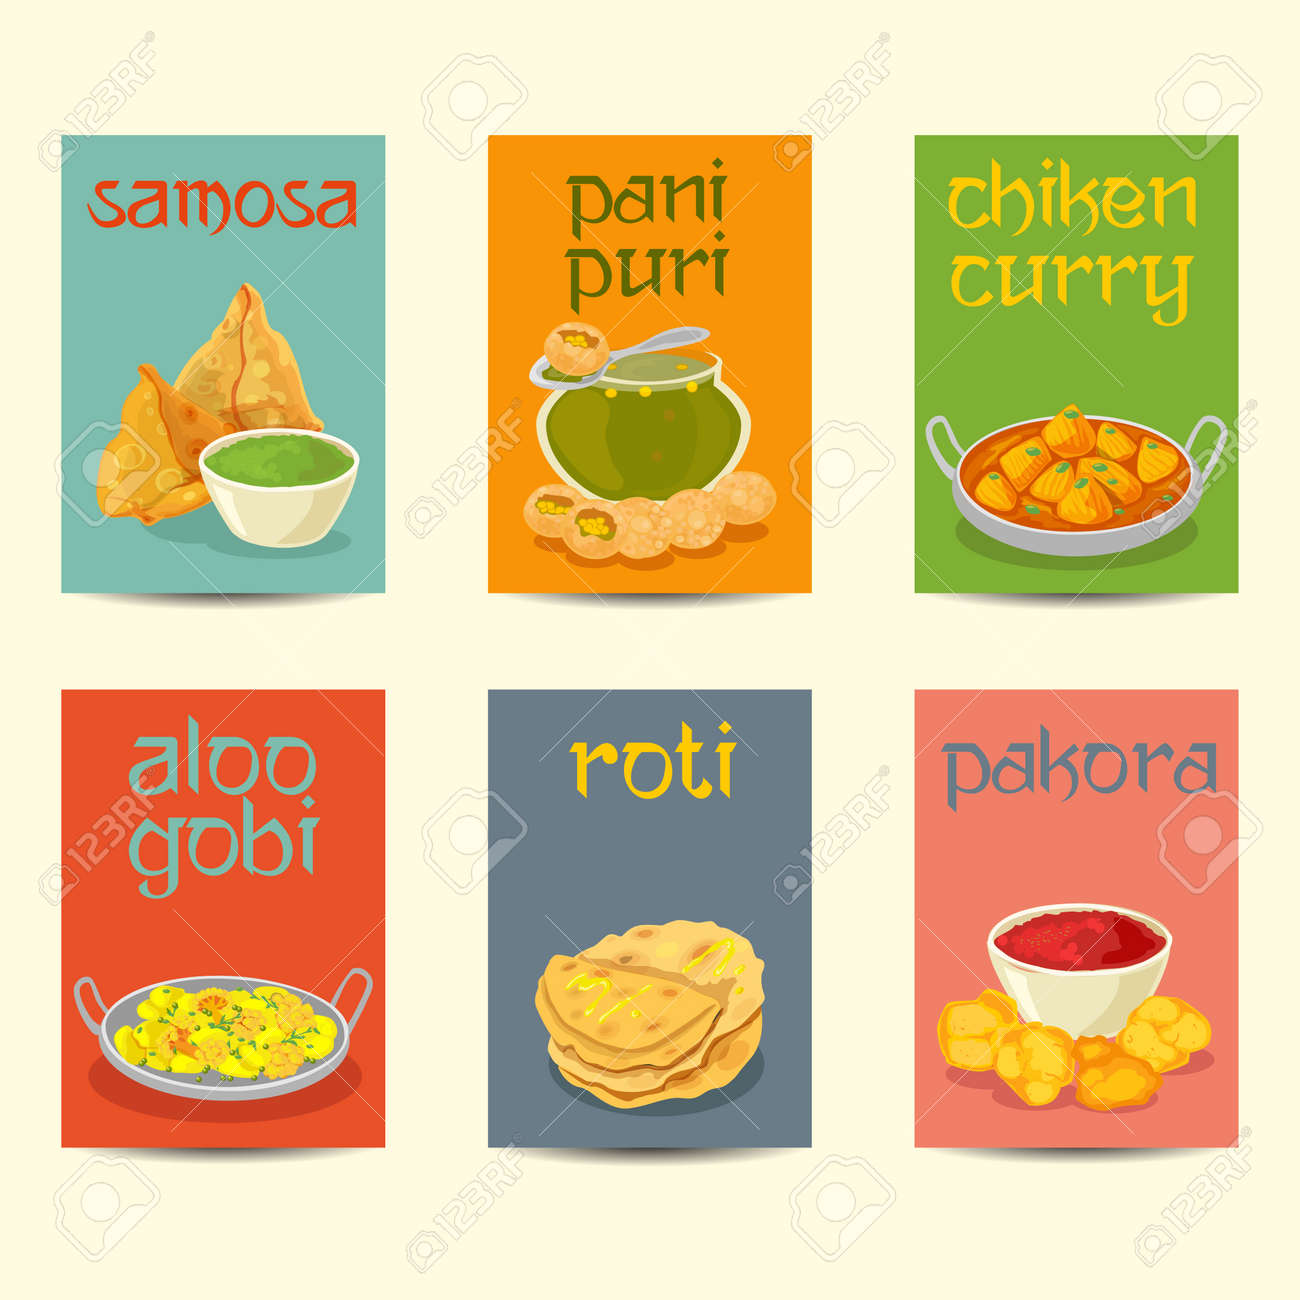 Poster Cuisine Indian Cuisine Food Dishes Colorful Posters Indian Dishes Banners